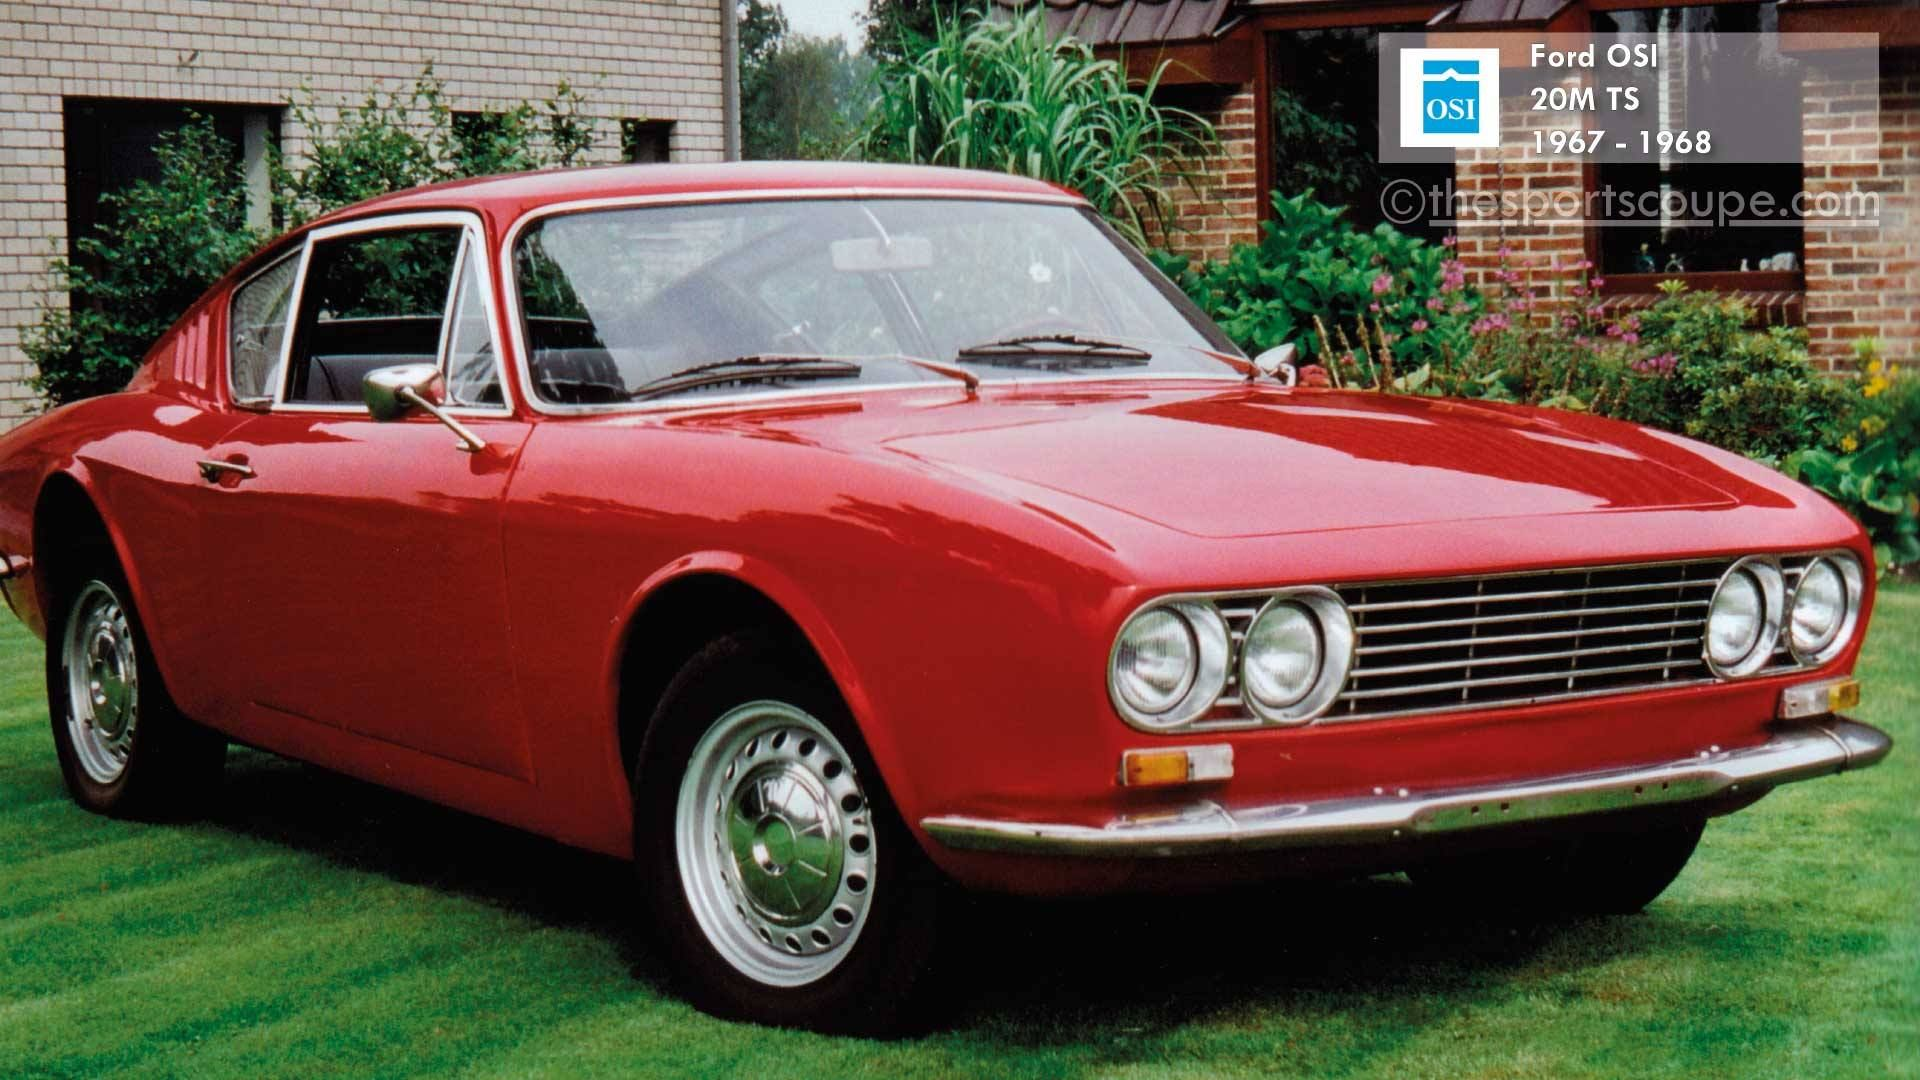 Ford Osi 20m Ts Taunus P7 1967 1968 Classic Cars Spotted In The